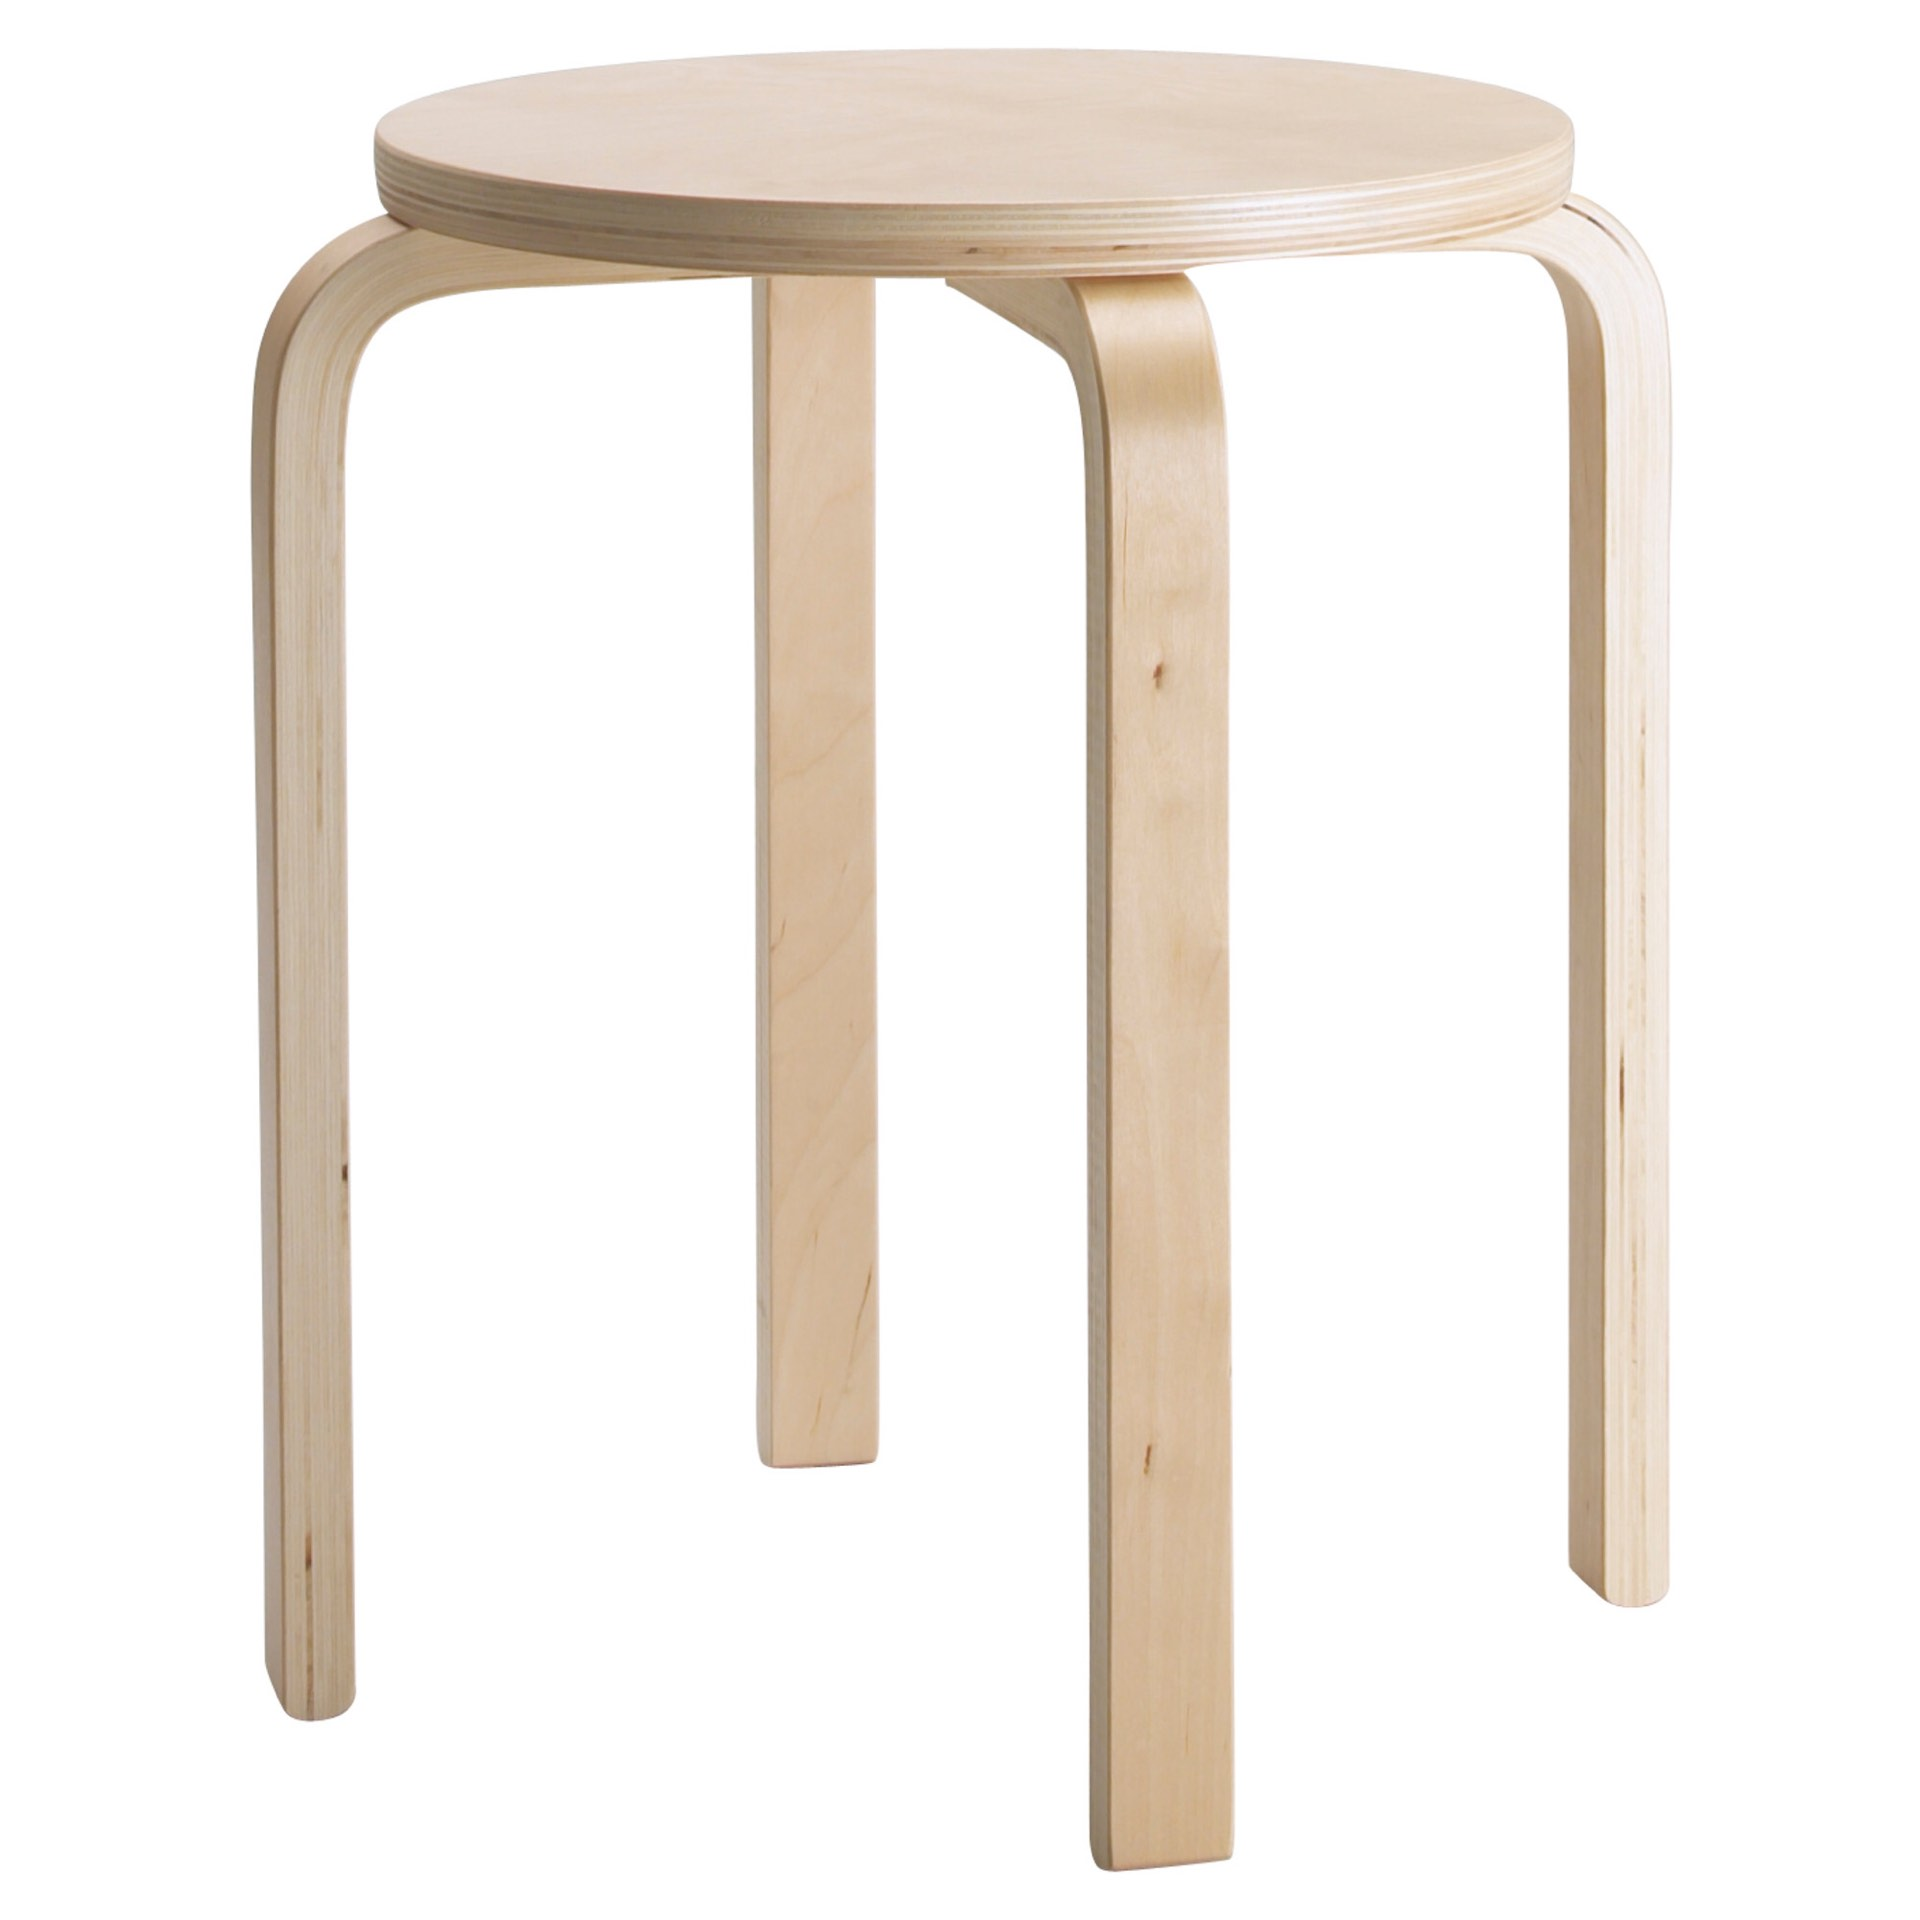 FROSTA birch plywood stool. ($15)